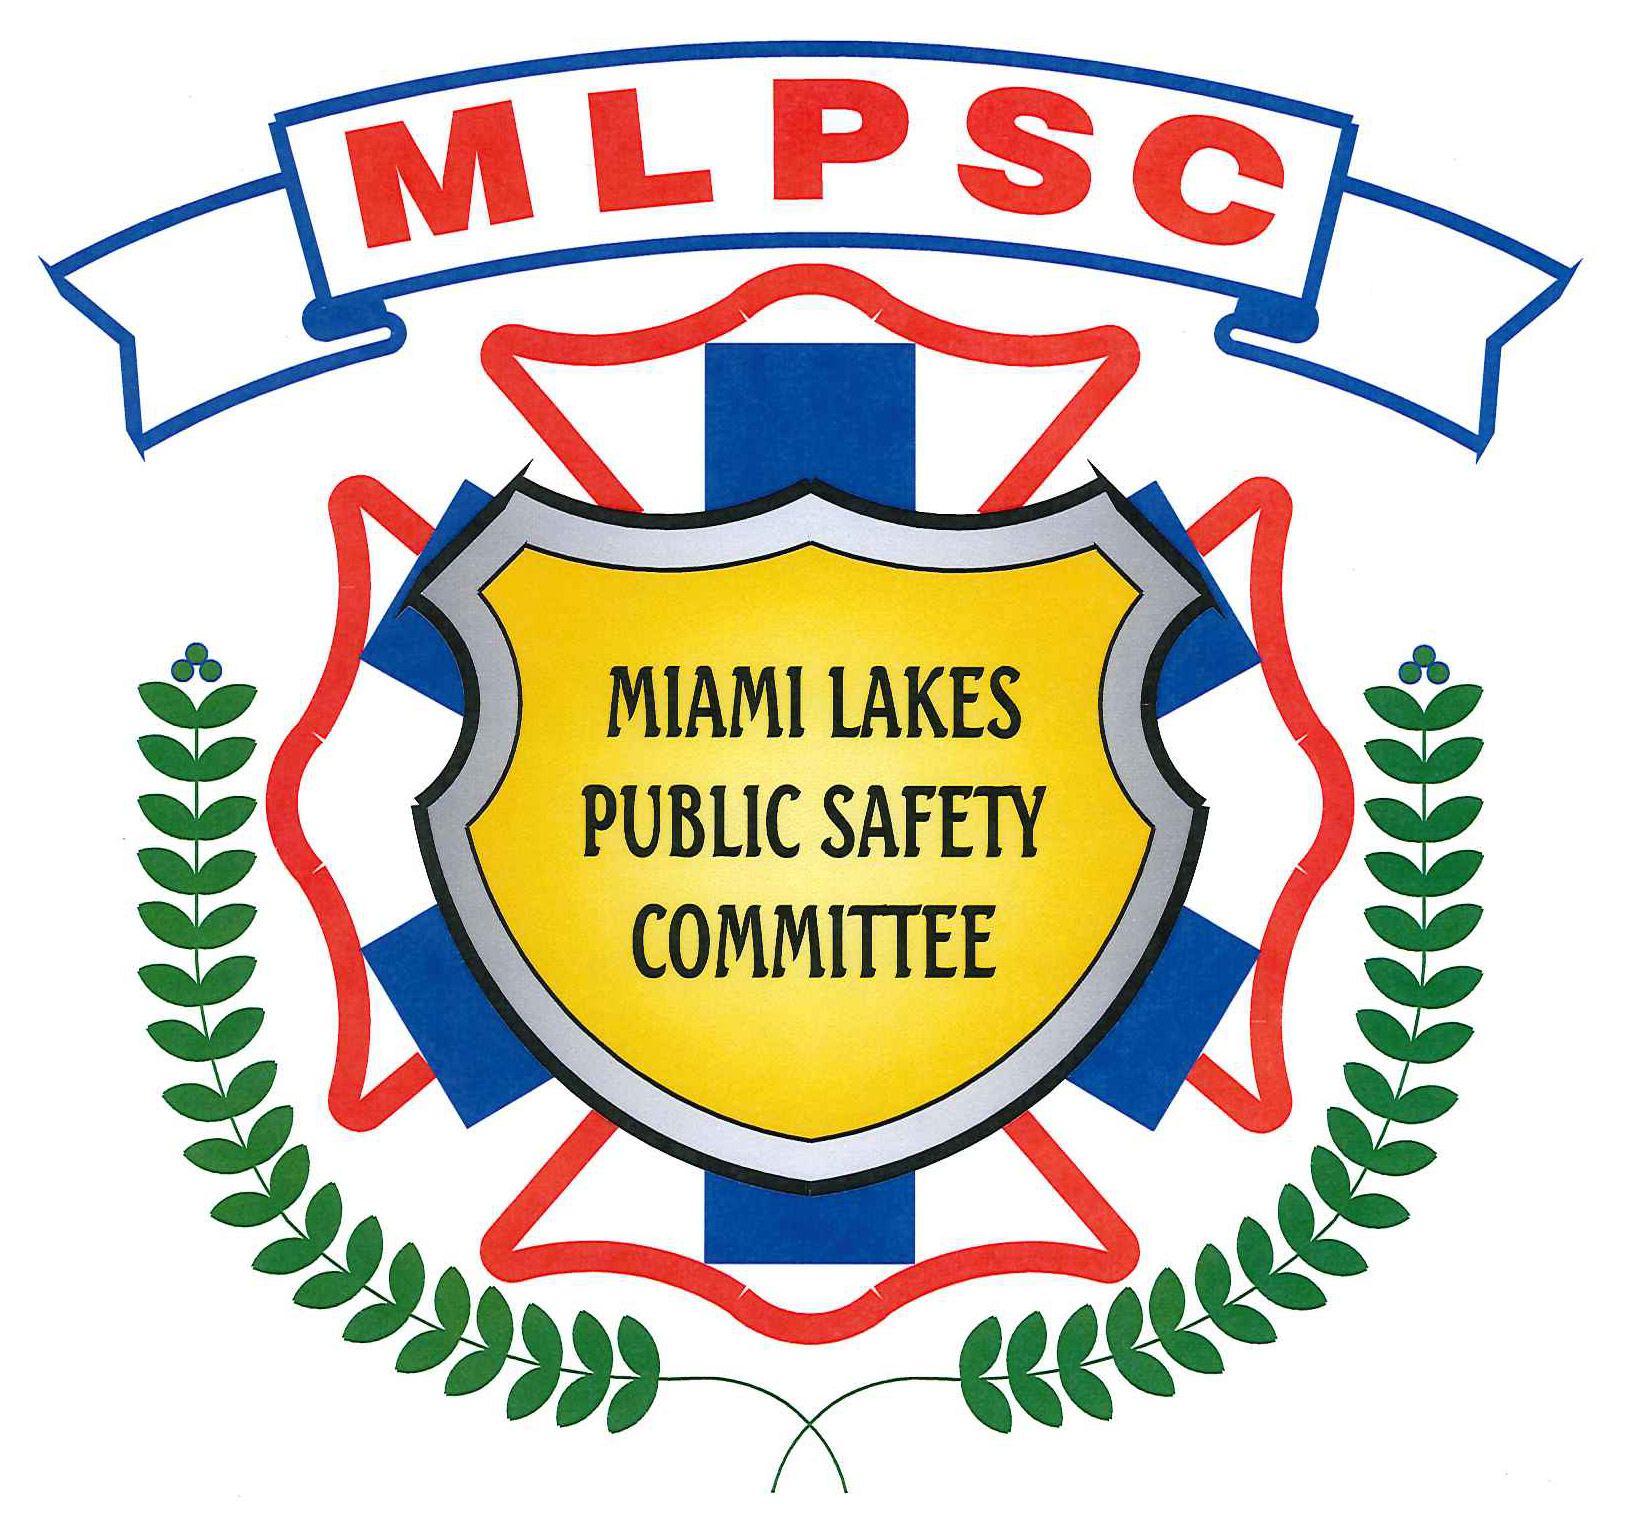 Miami Lakes Public Safety Committee